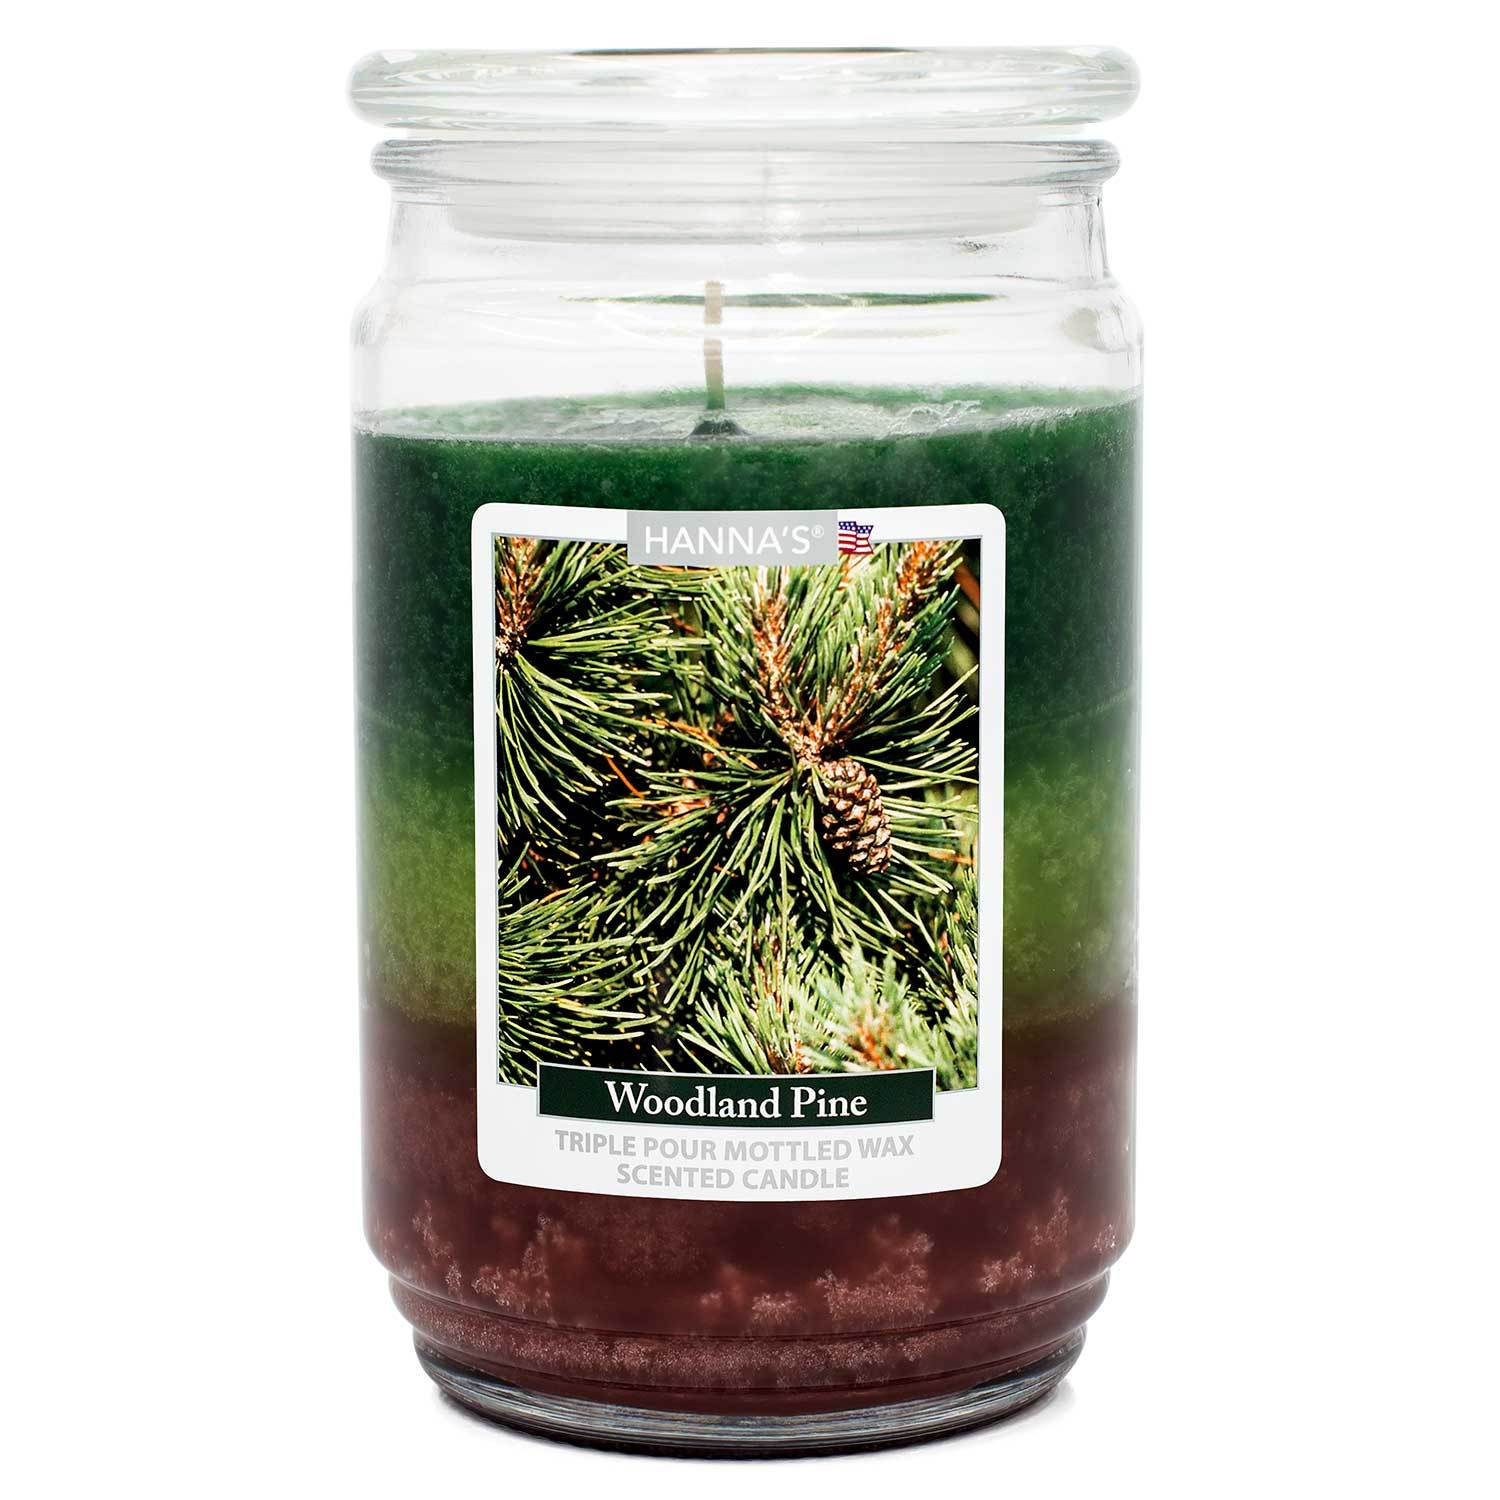 Woodland Pine Scented Mottled Wax Candle